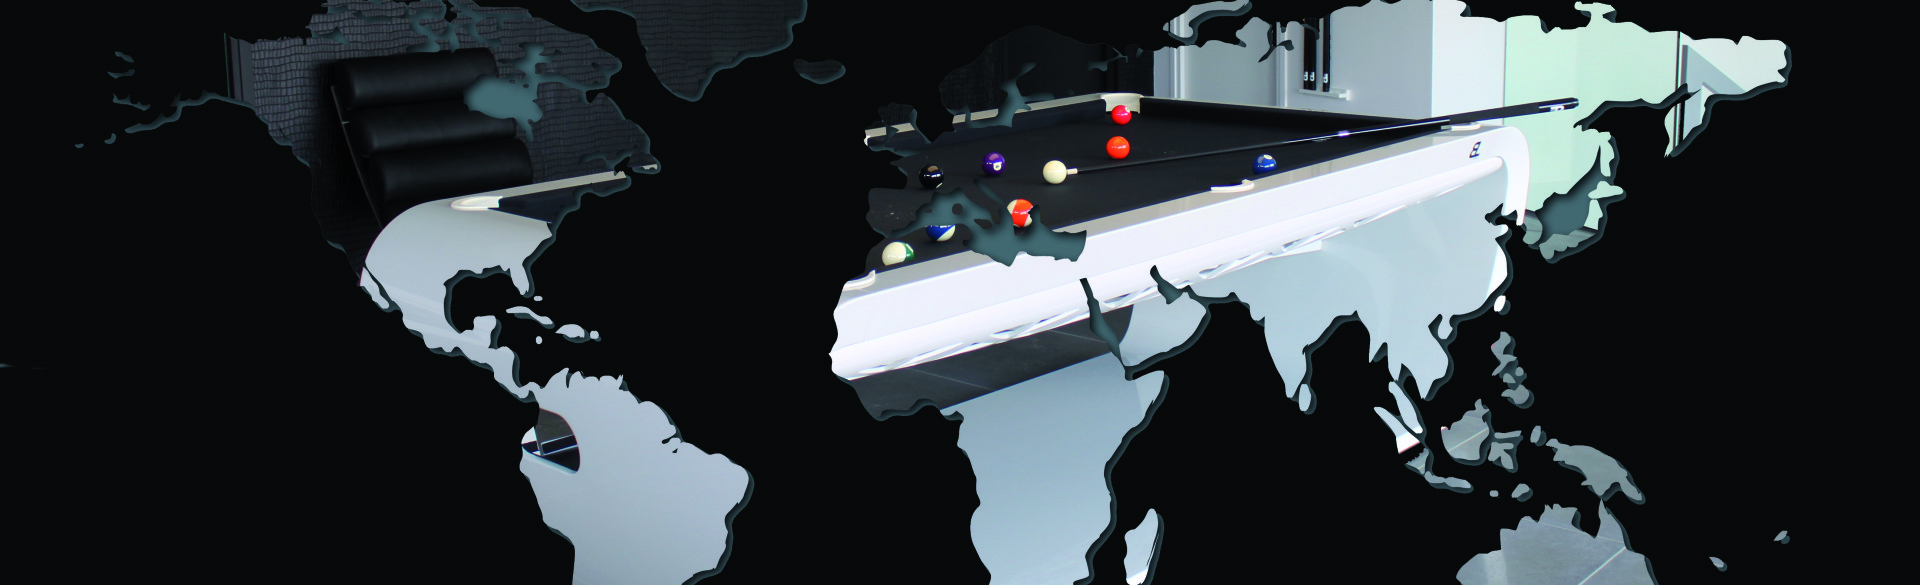 Billard BlackLight autour du monde